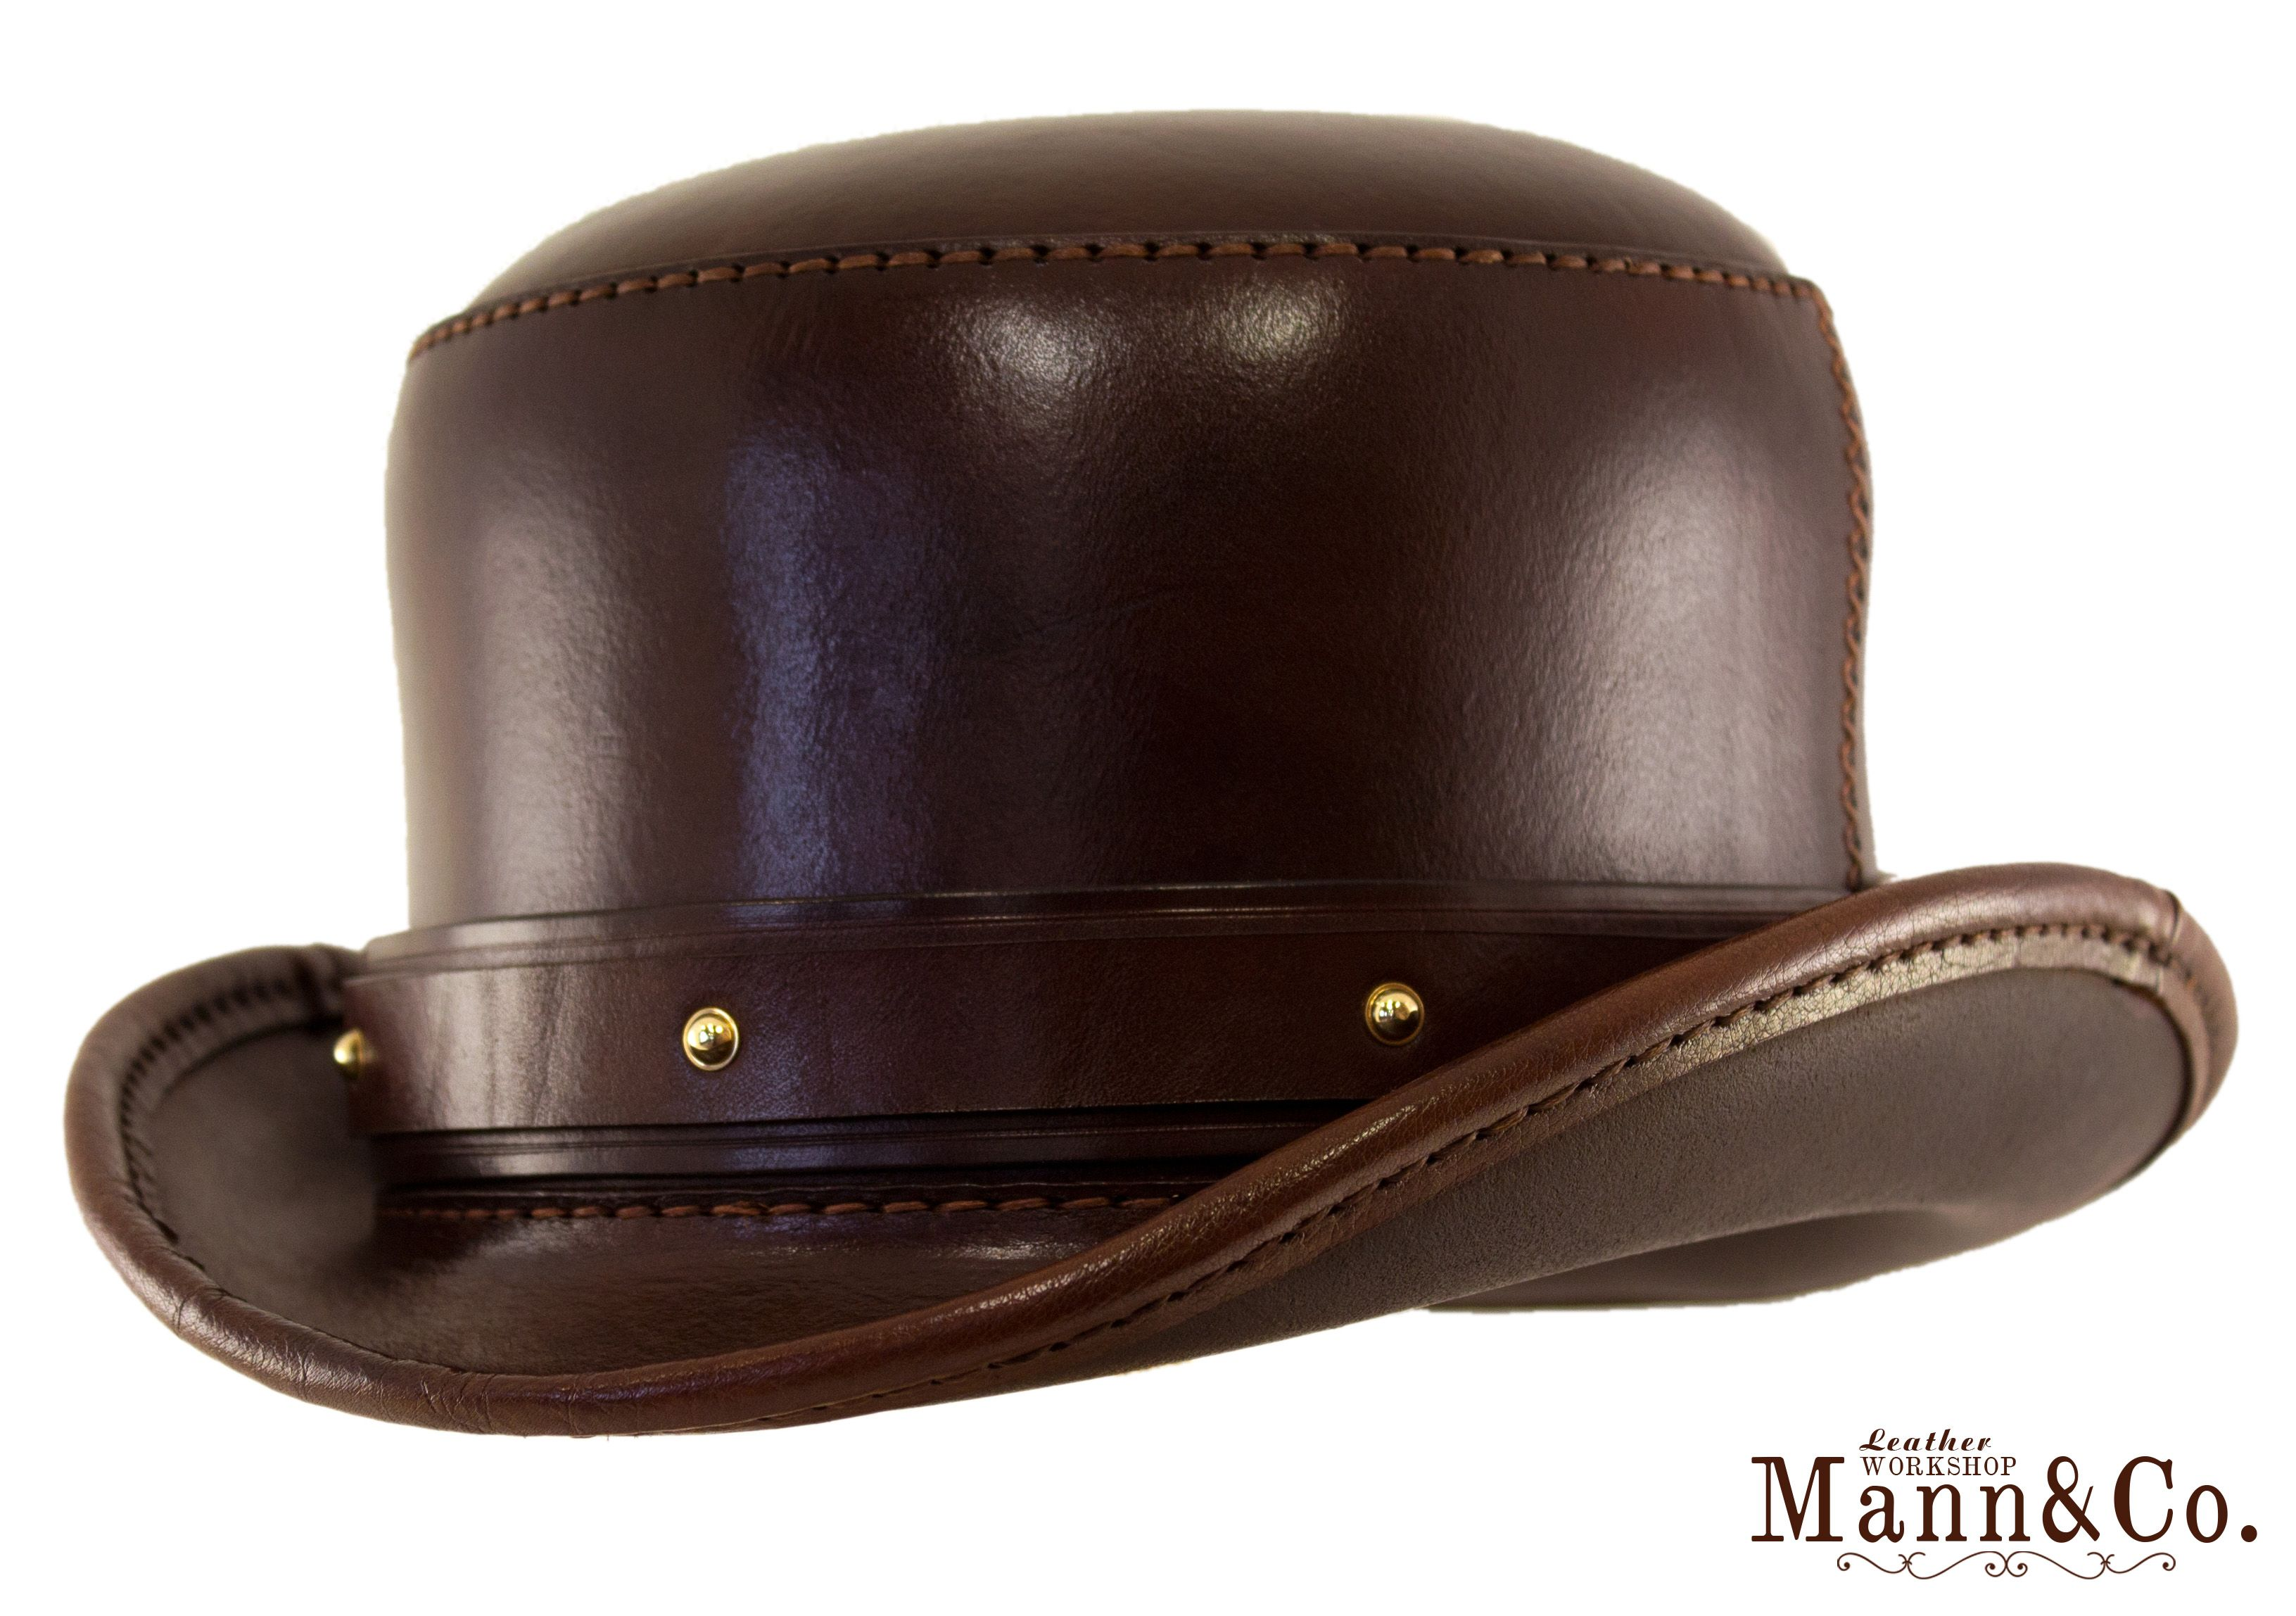 379340b1d3 A Bowler hat in veg-tan leather.